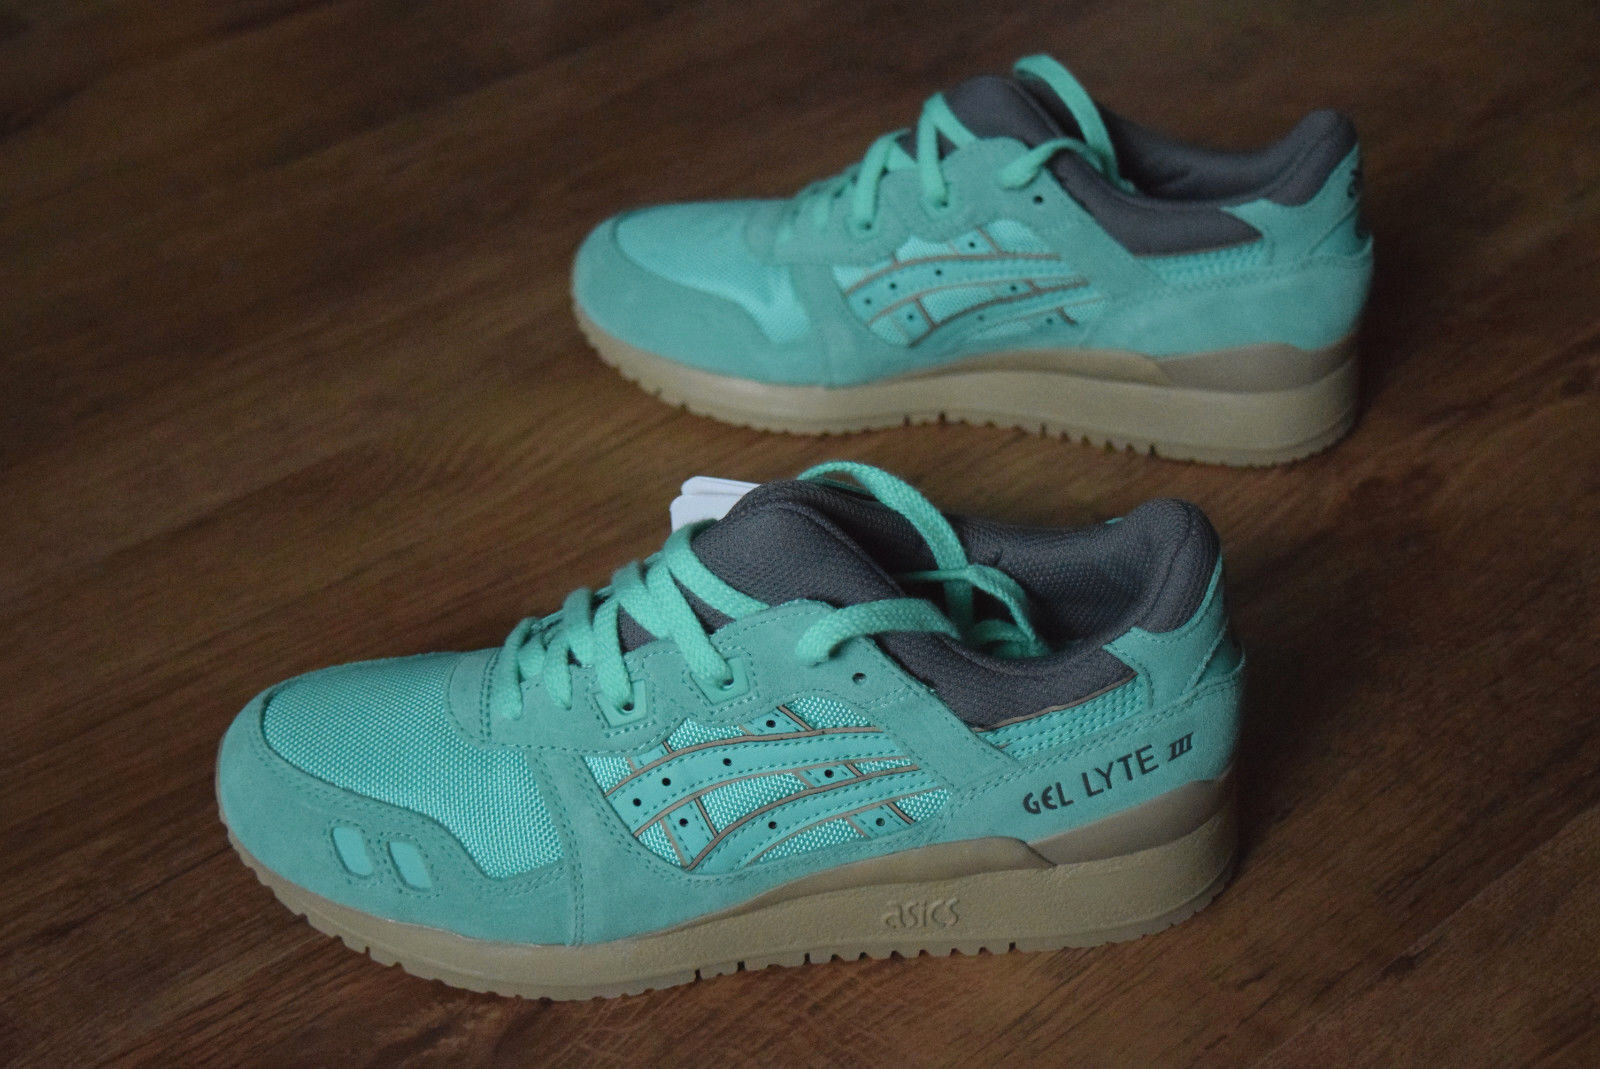 ASICS GEL LYTE III 39 h6w7n 4747 Saga GT II FOOTPATROL IV V The latest discount shoes for men and women